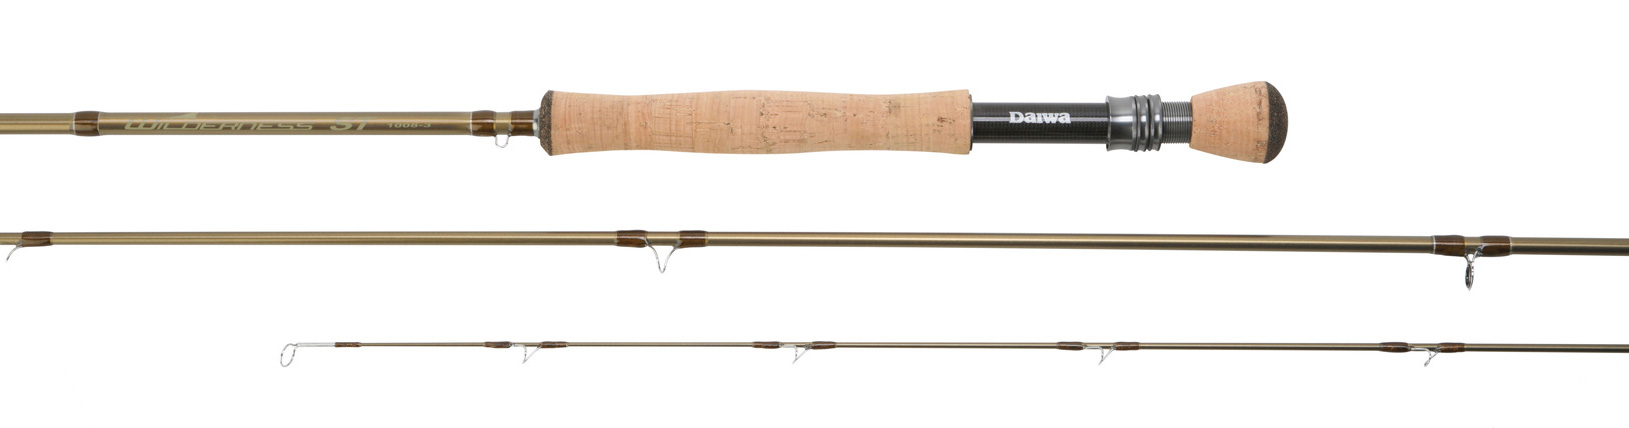 Daiwa wilderness st fly fishing rod half price clearance for Fishing rod clearance